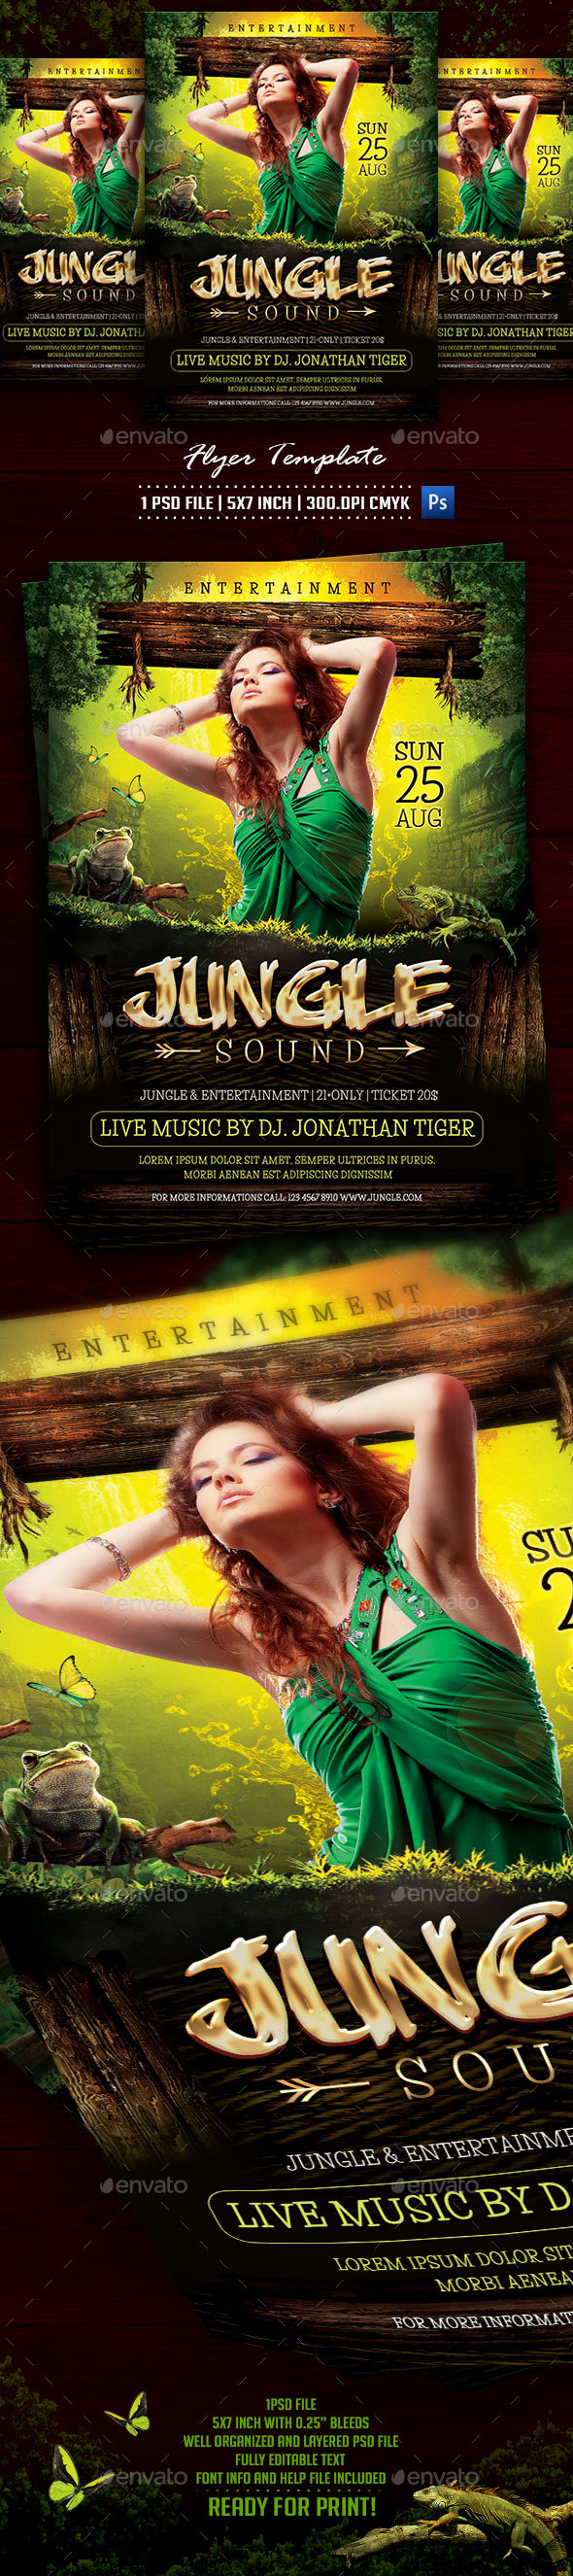 Jungle Sound Flyer Template - Flyers Print Templates